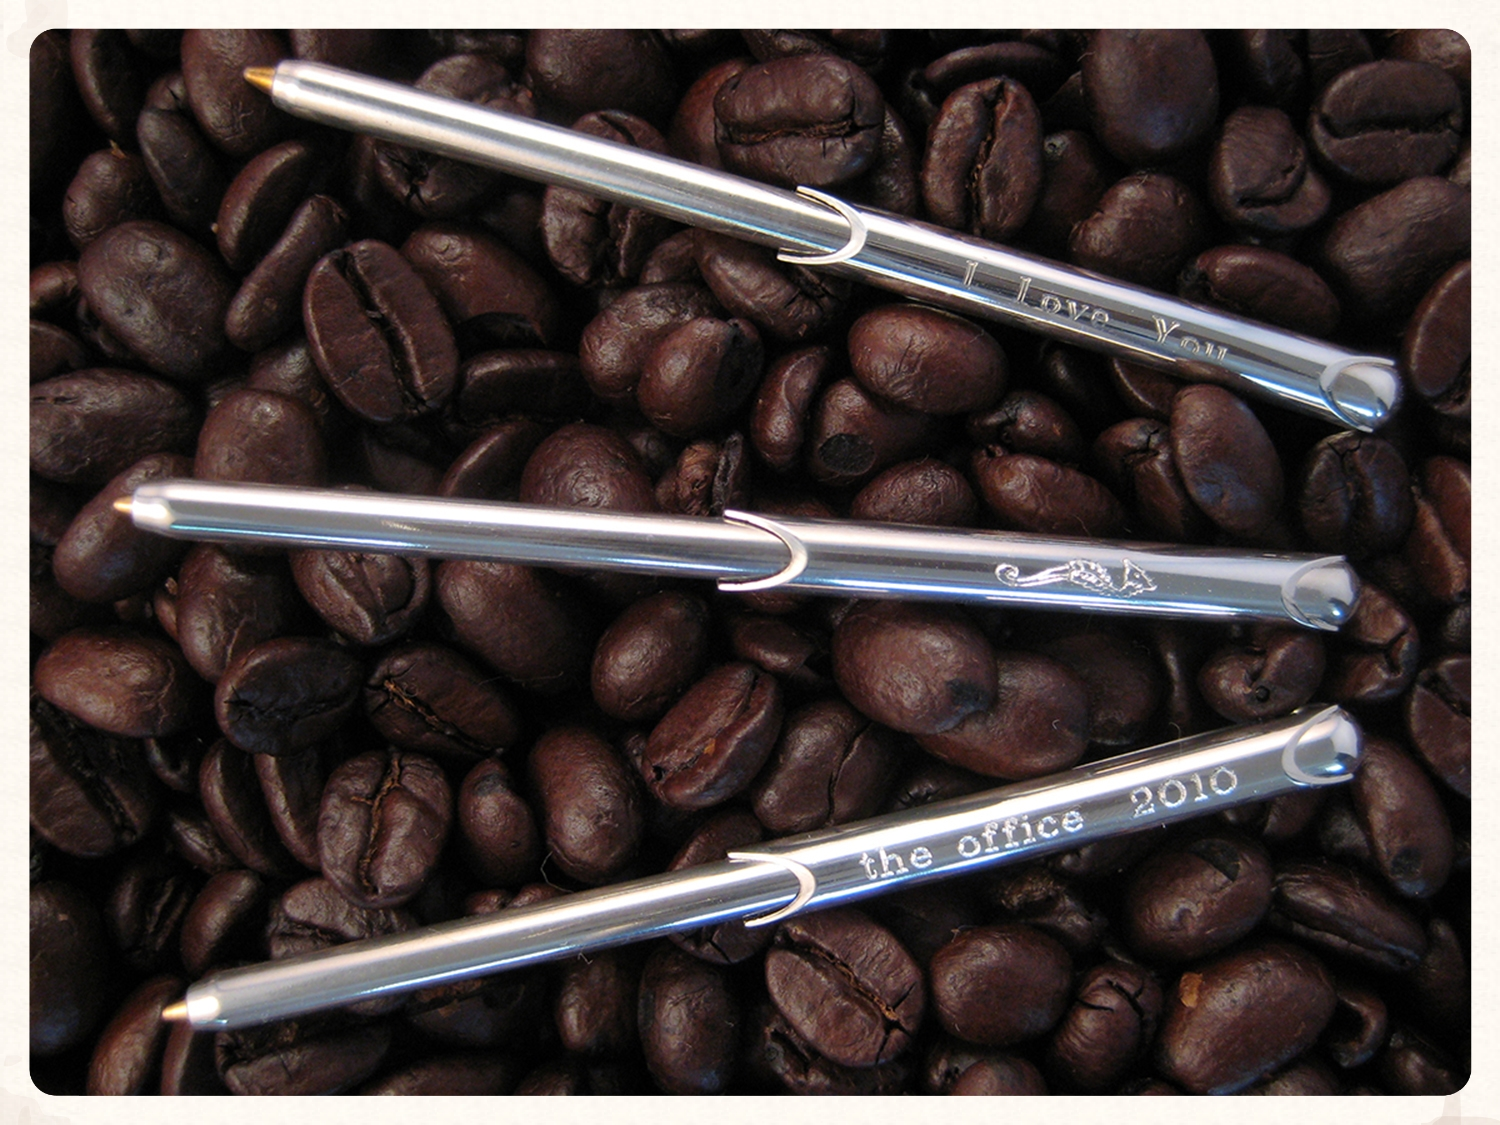 3penson-coffeebeans-engraving-walletpen.jpg